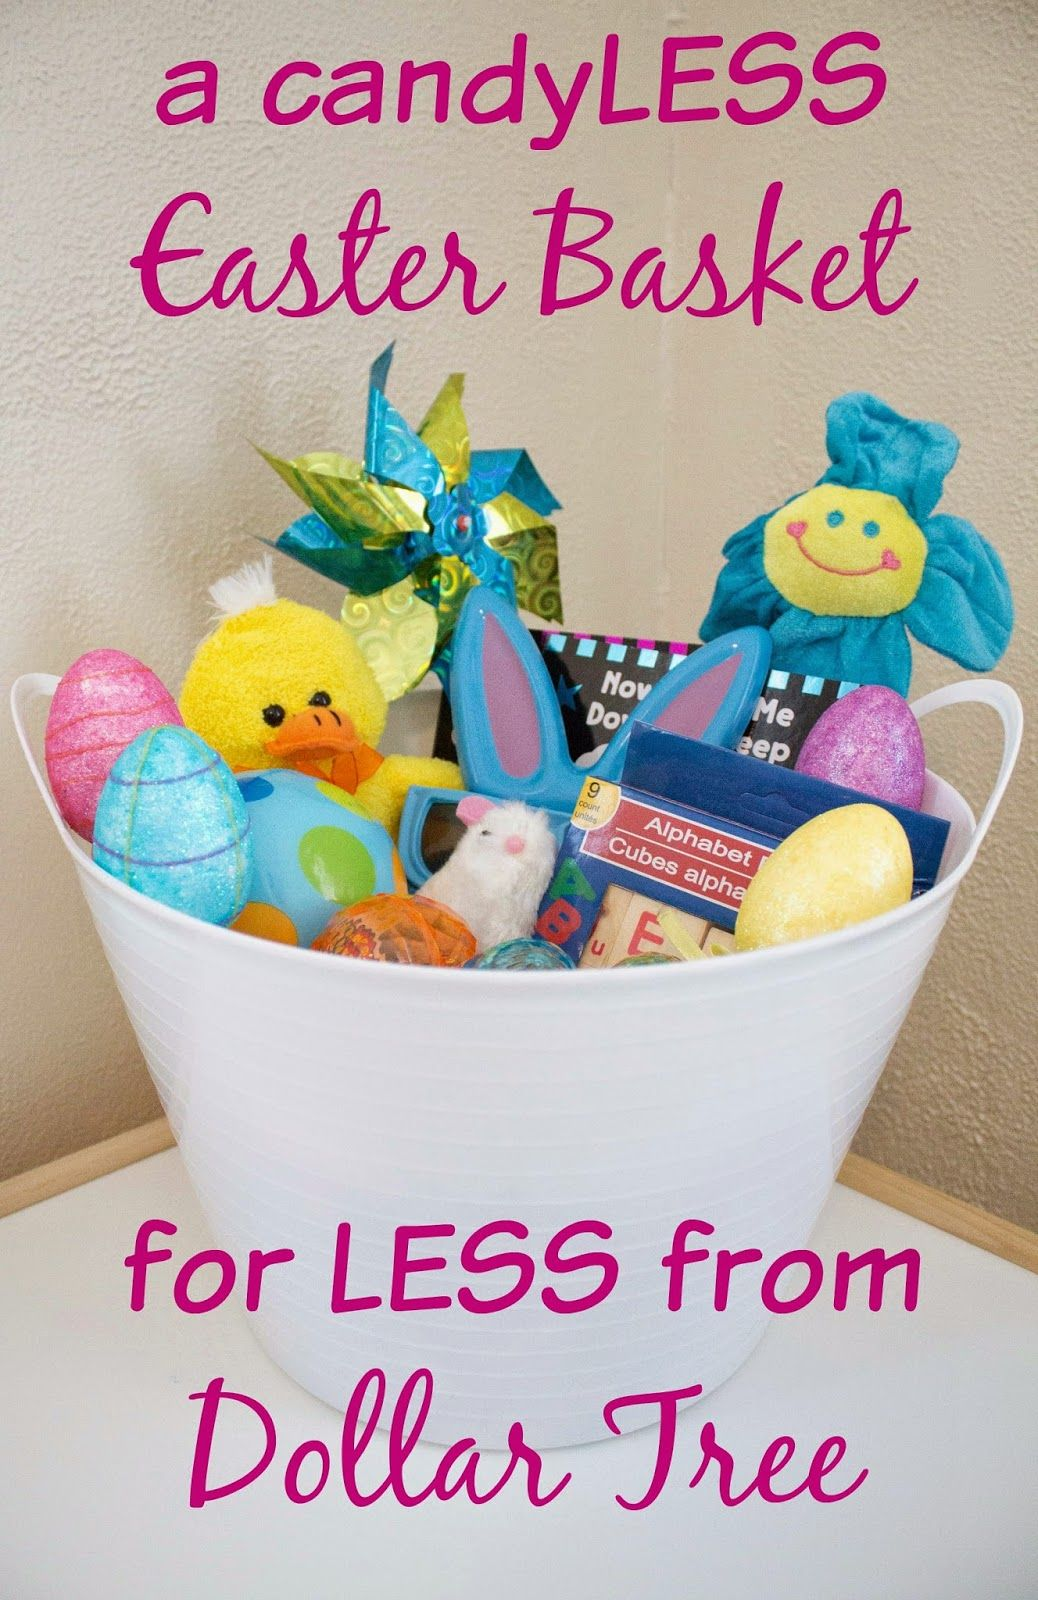 Wife mommy me a candyless easter basket for less from dollar tree wife mommy me a candyless easter basket for less from dollar tree budget negle Gallery